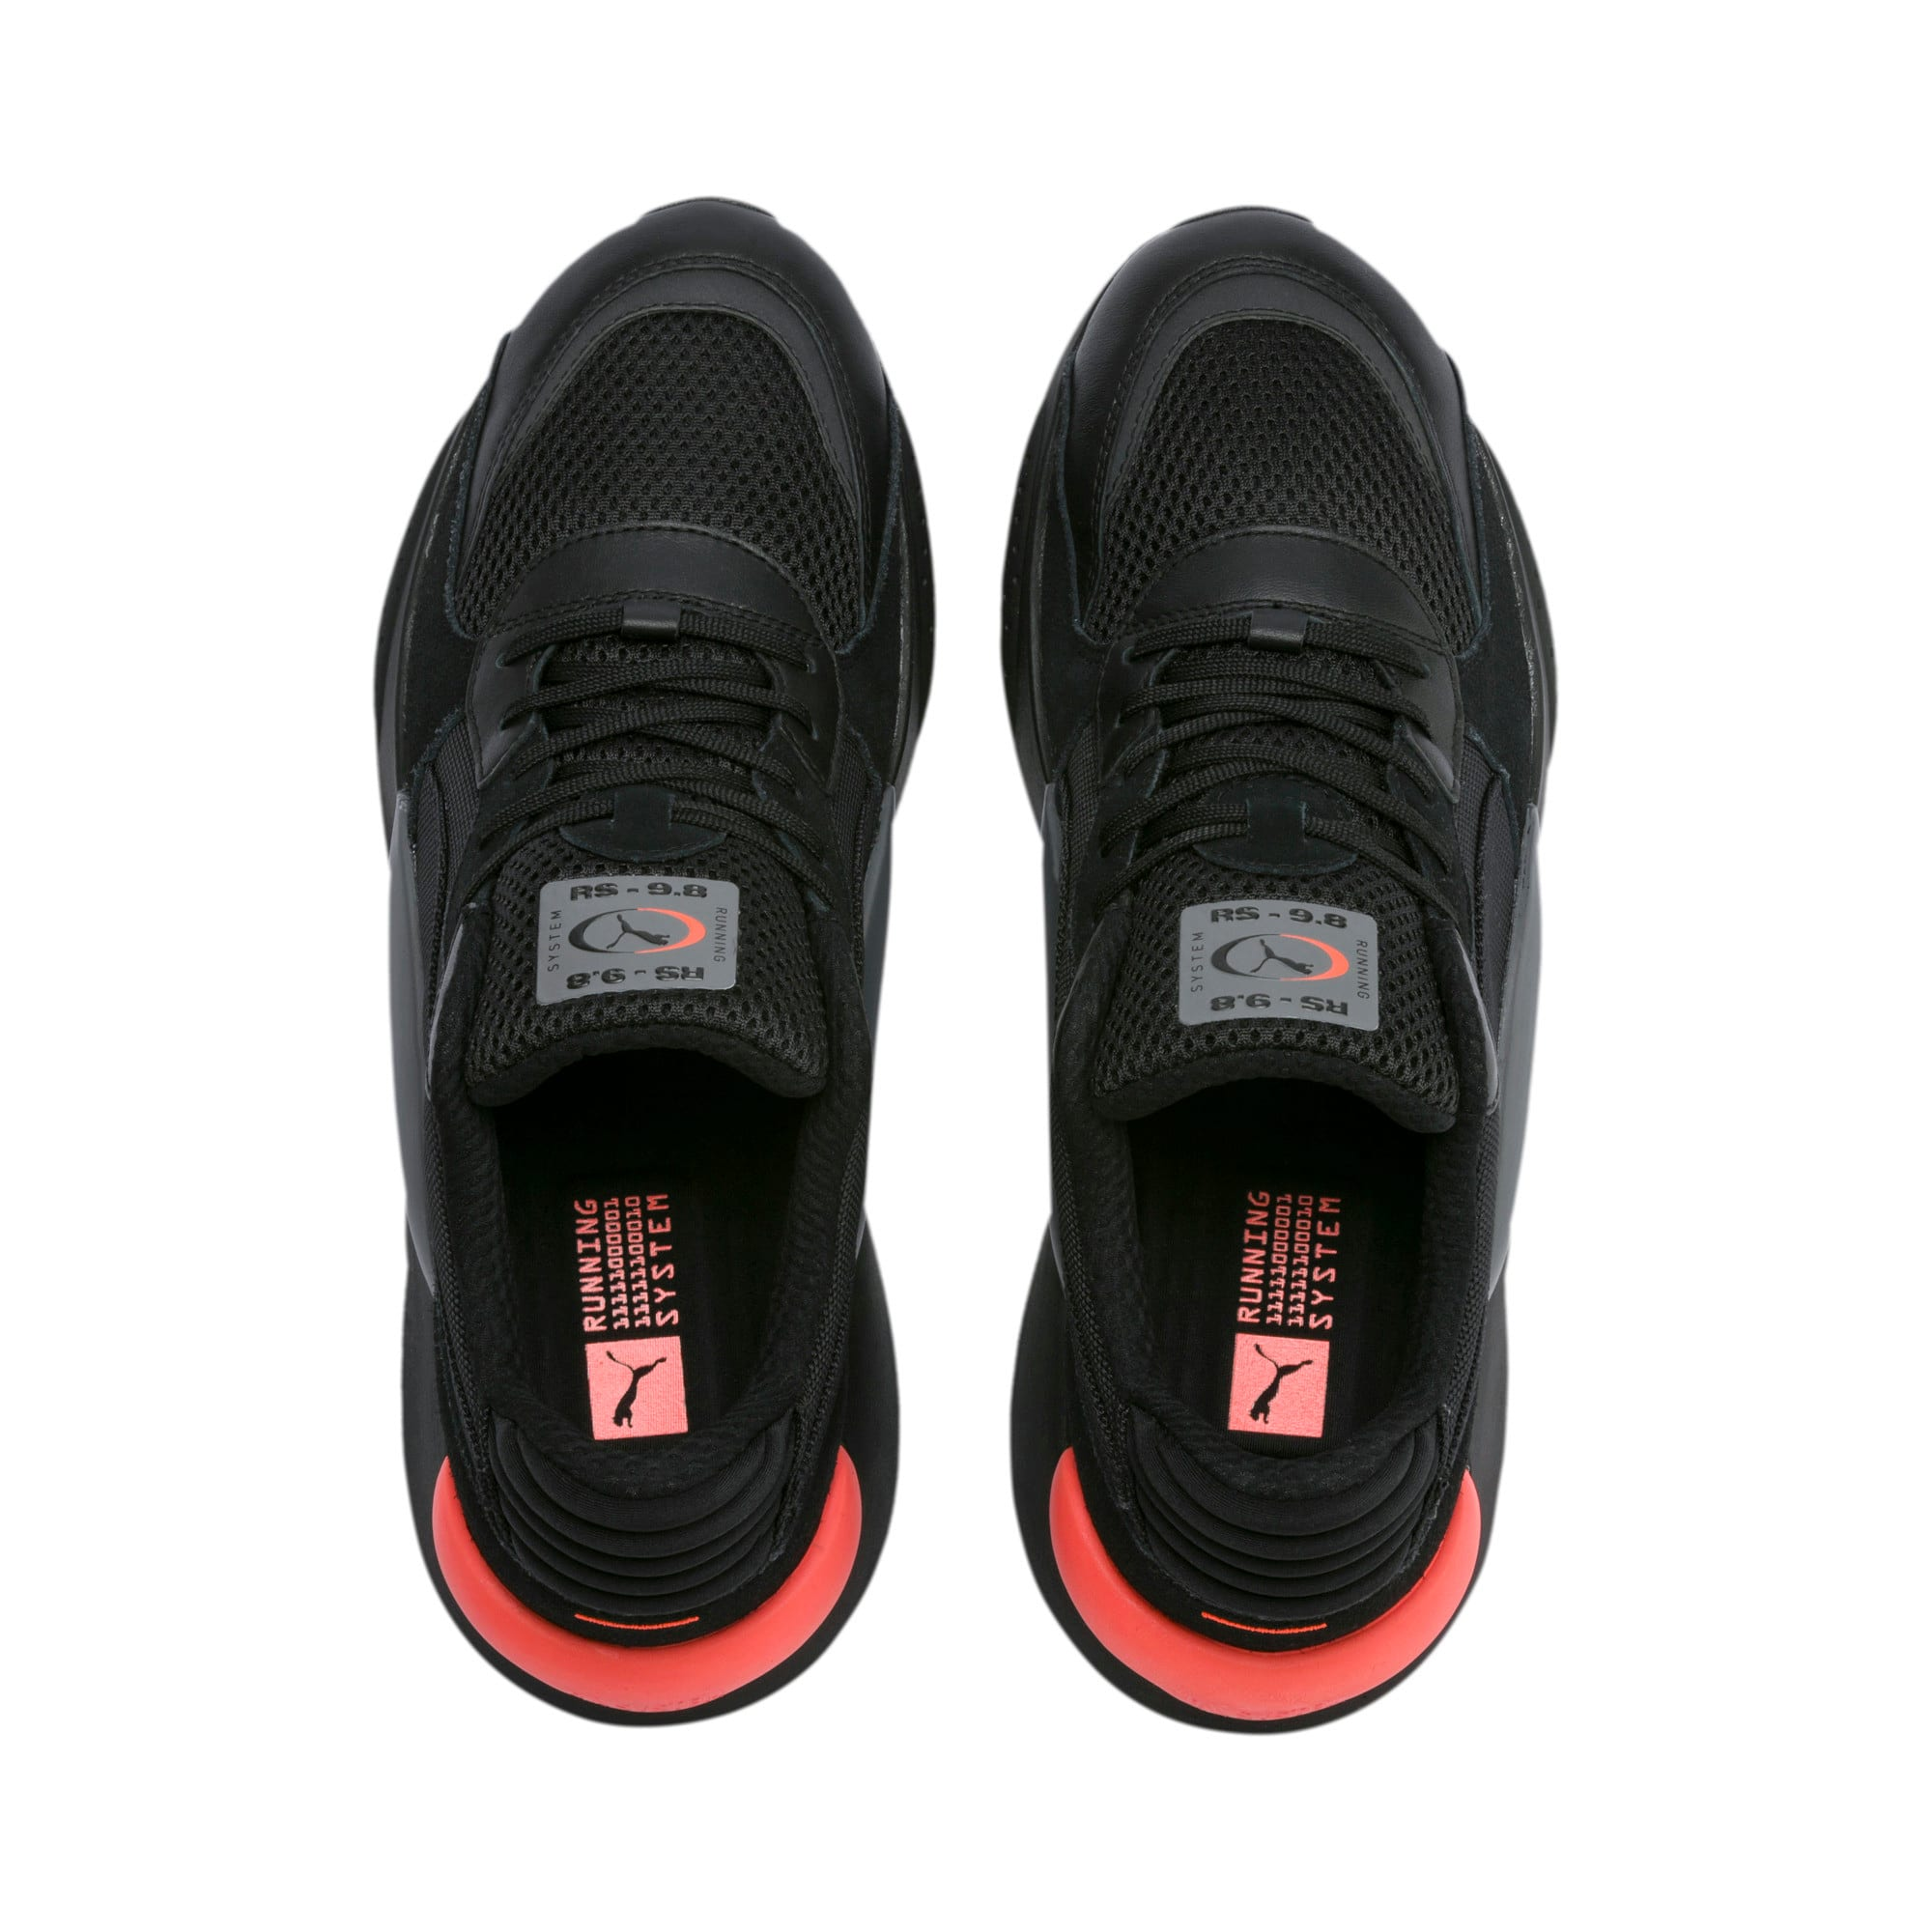 Thumbnail 6 of RS 9.8 Cosmic sportschoenen, Puma Black, medium